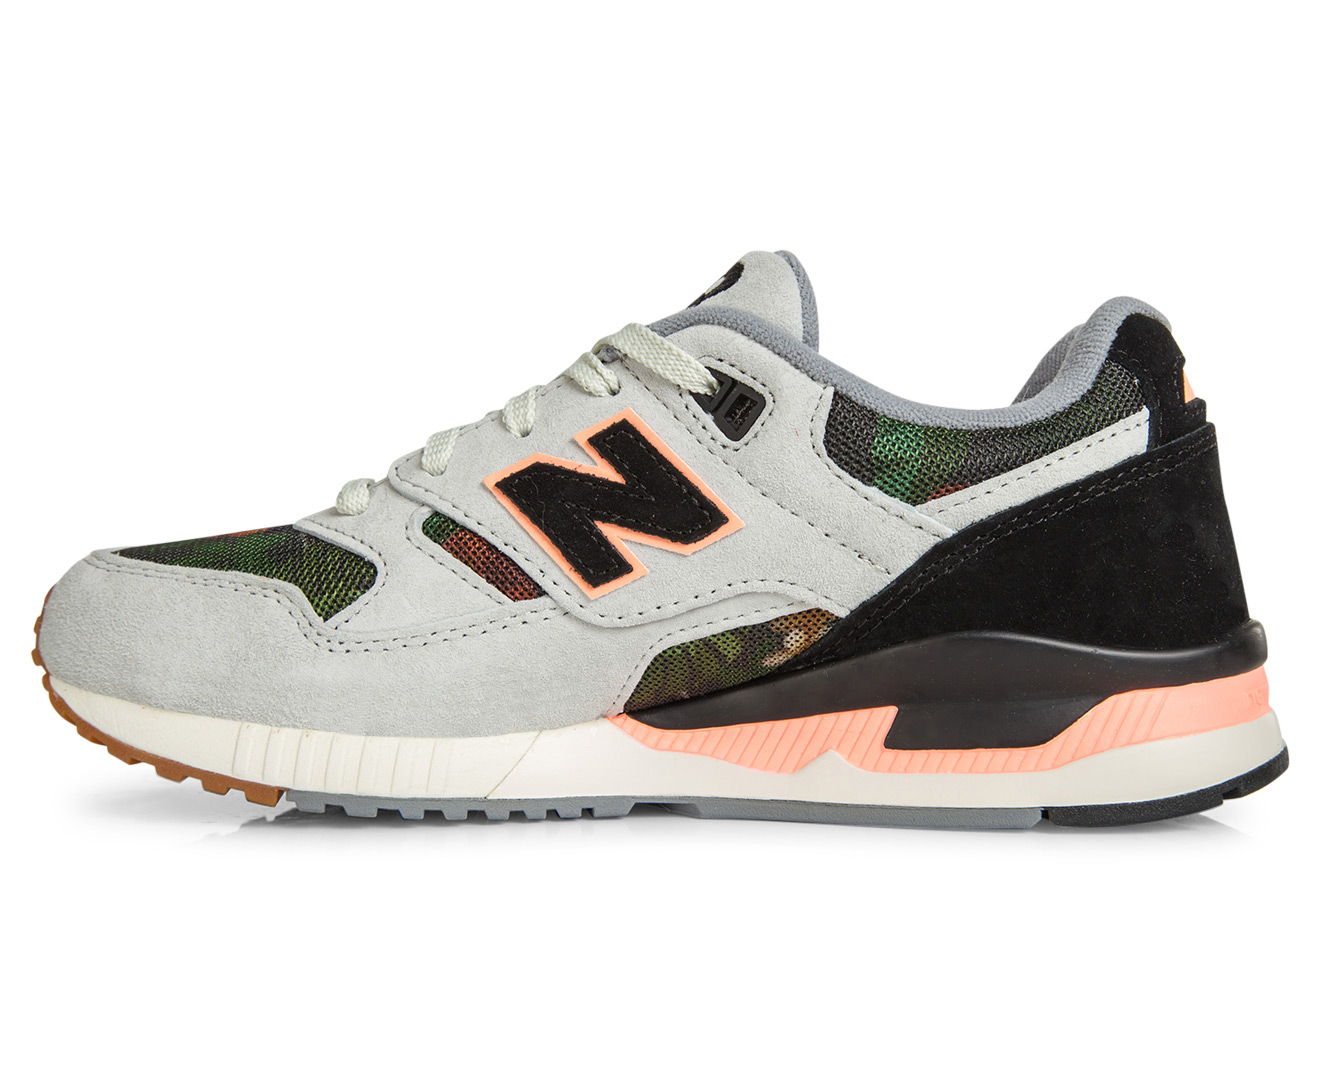 732796ef28e New Balance Women s 530 Classic Floral Ink Sneaker - Steel Black Coral